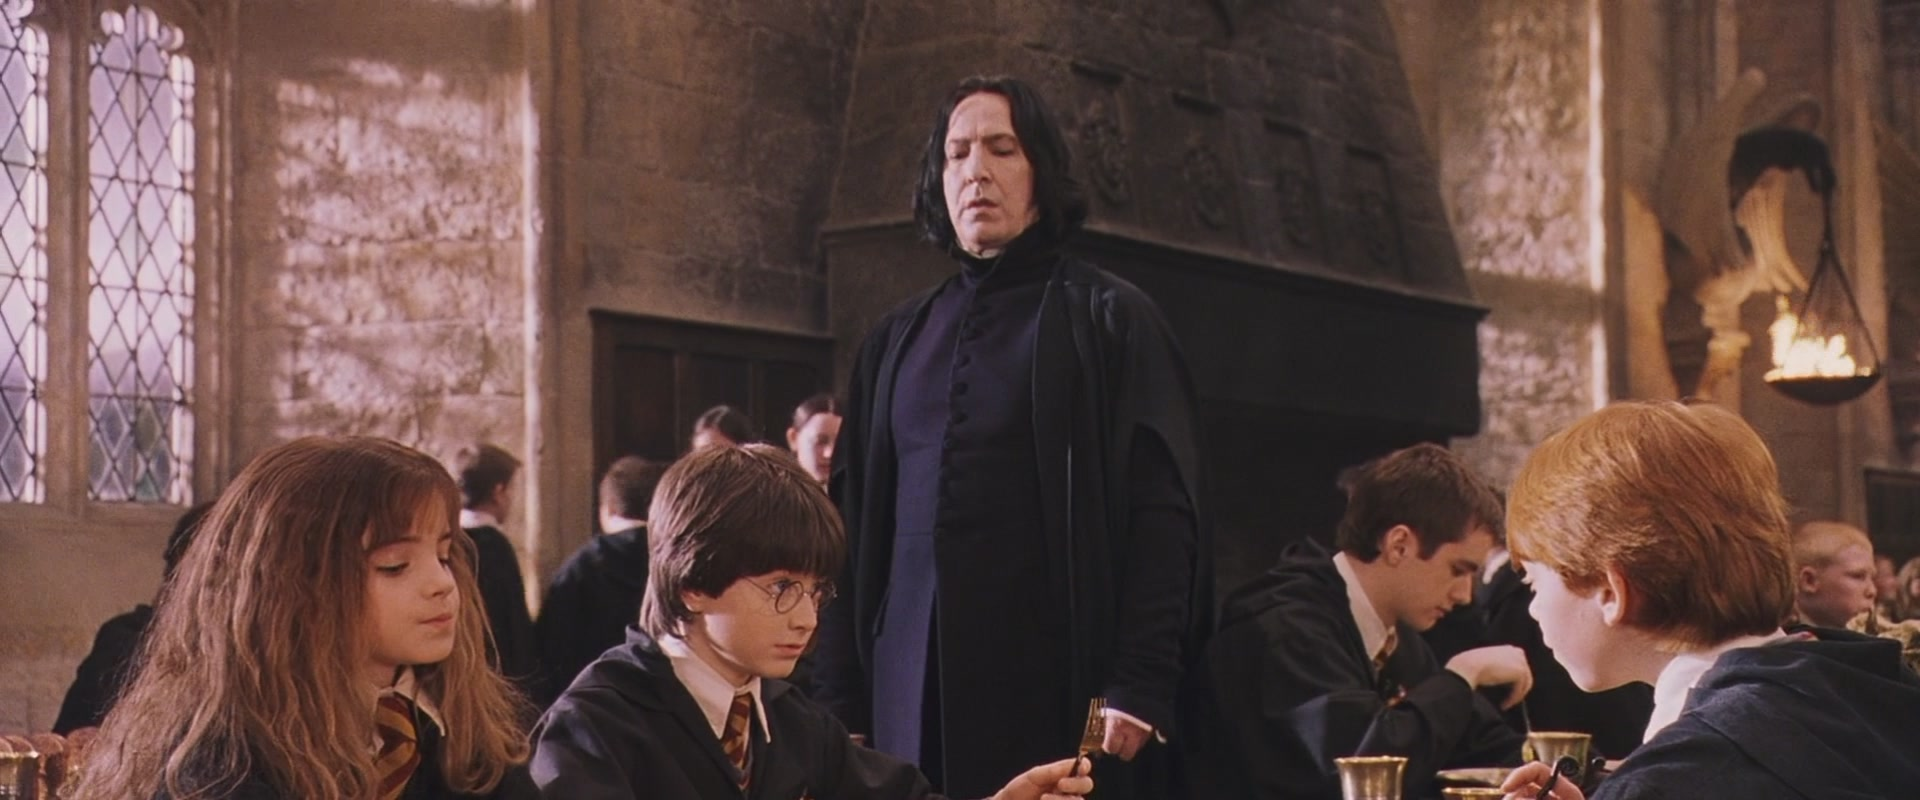 The first thing that Snape says to Harry Potter has much more meaning than we thought